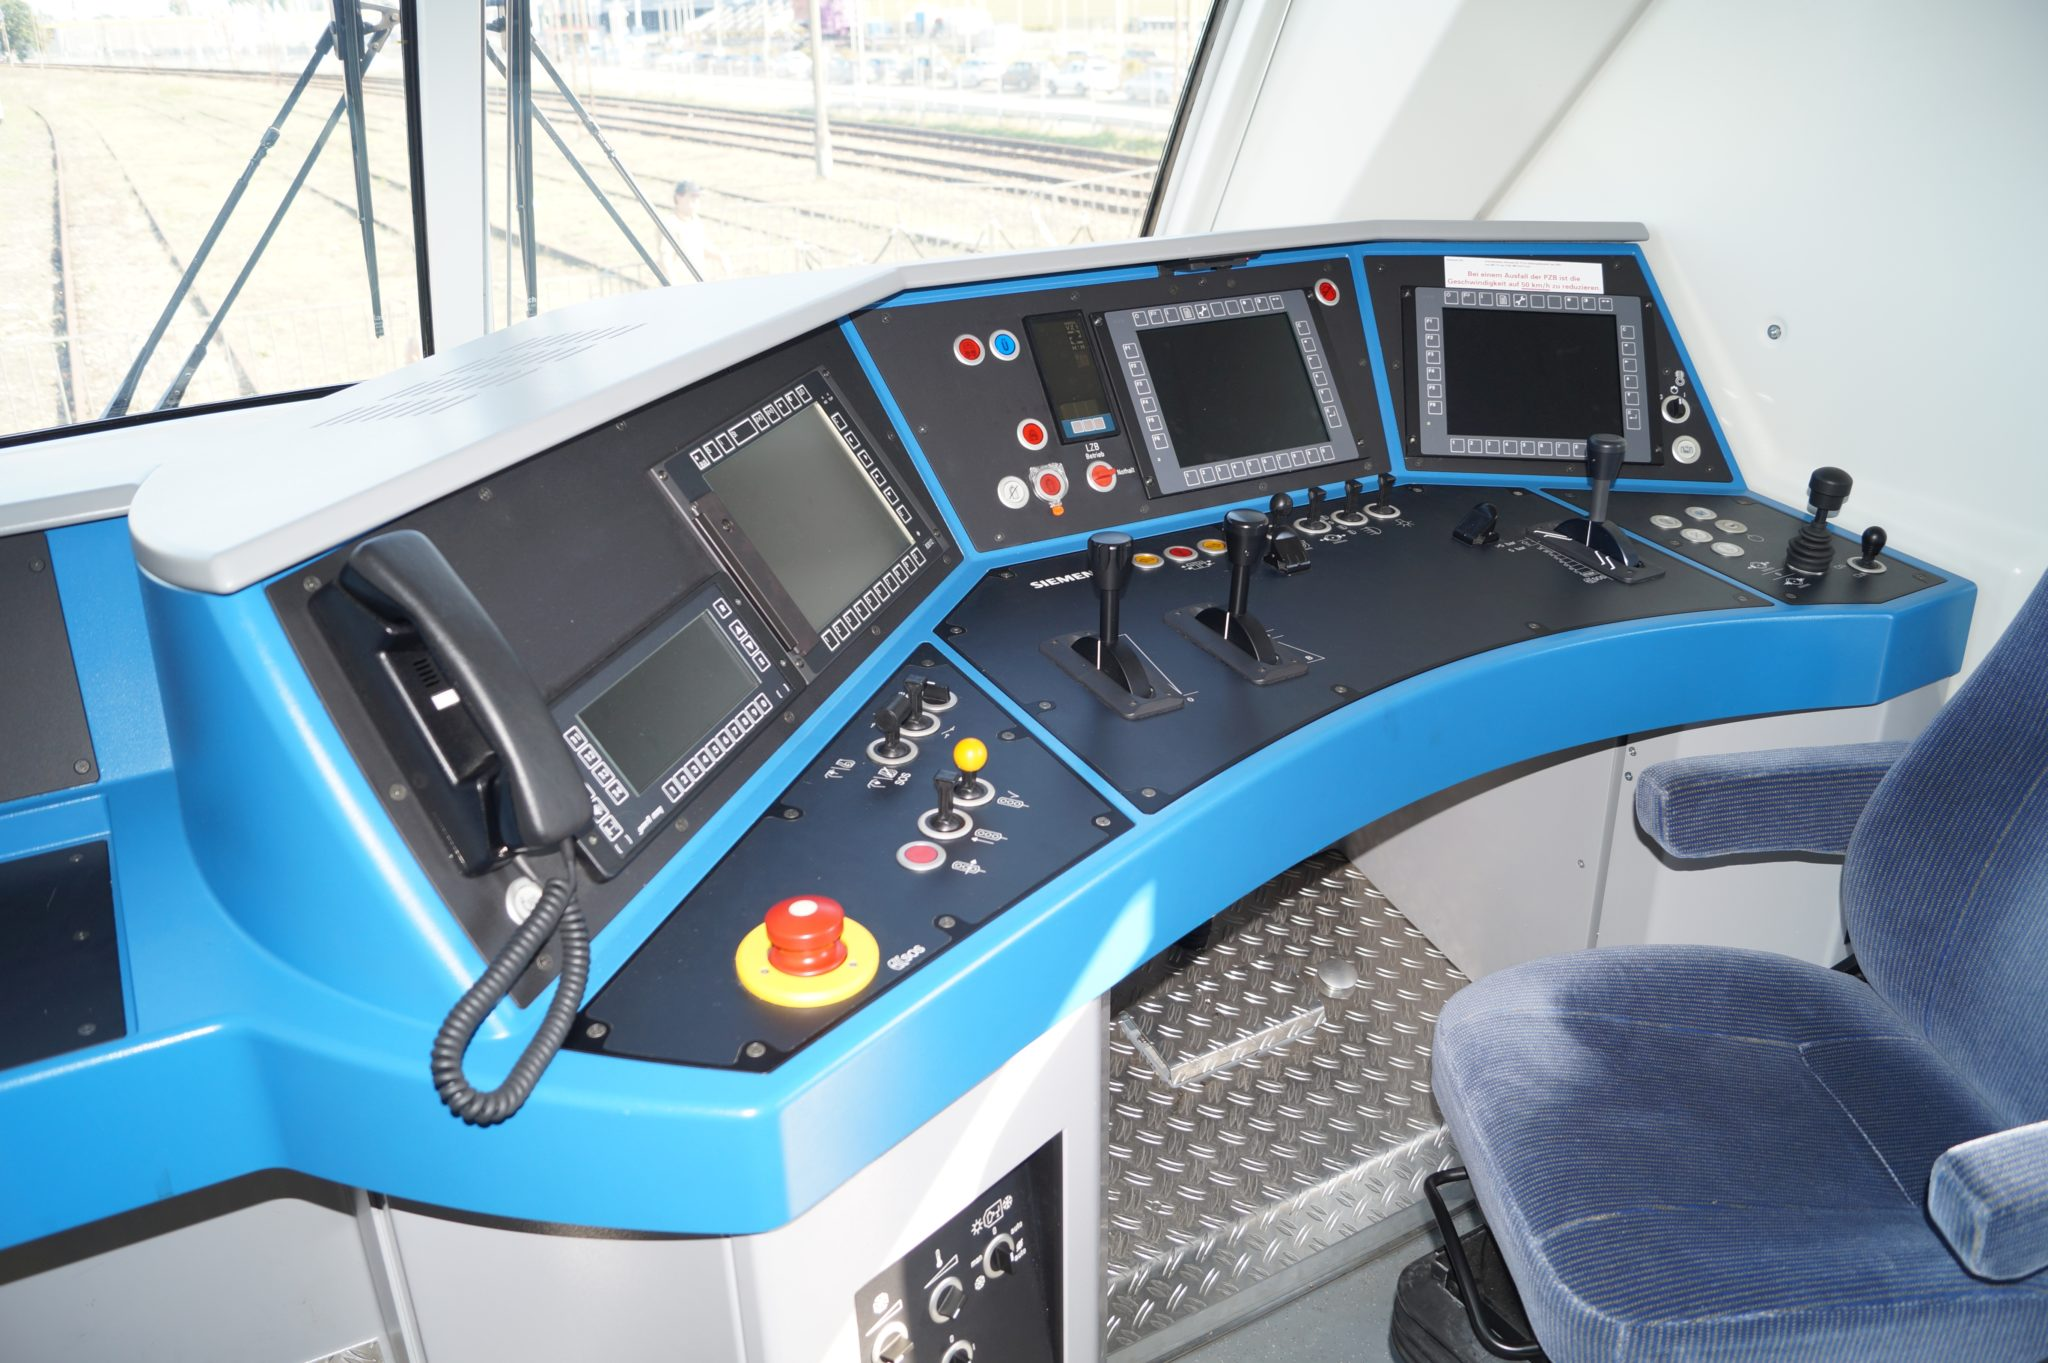 500 Siemens Vectron locomotives now feature Alstom's Atlas 200 European Train Control System